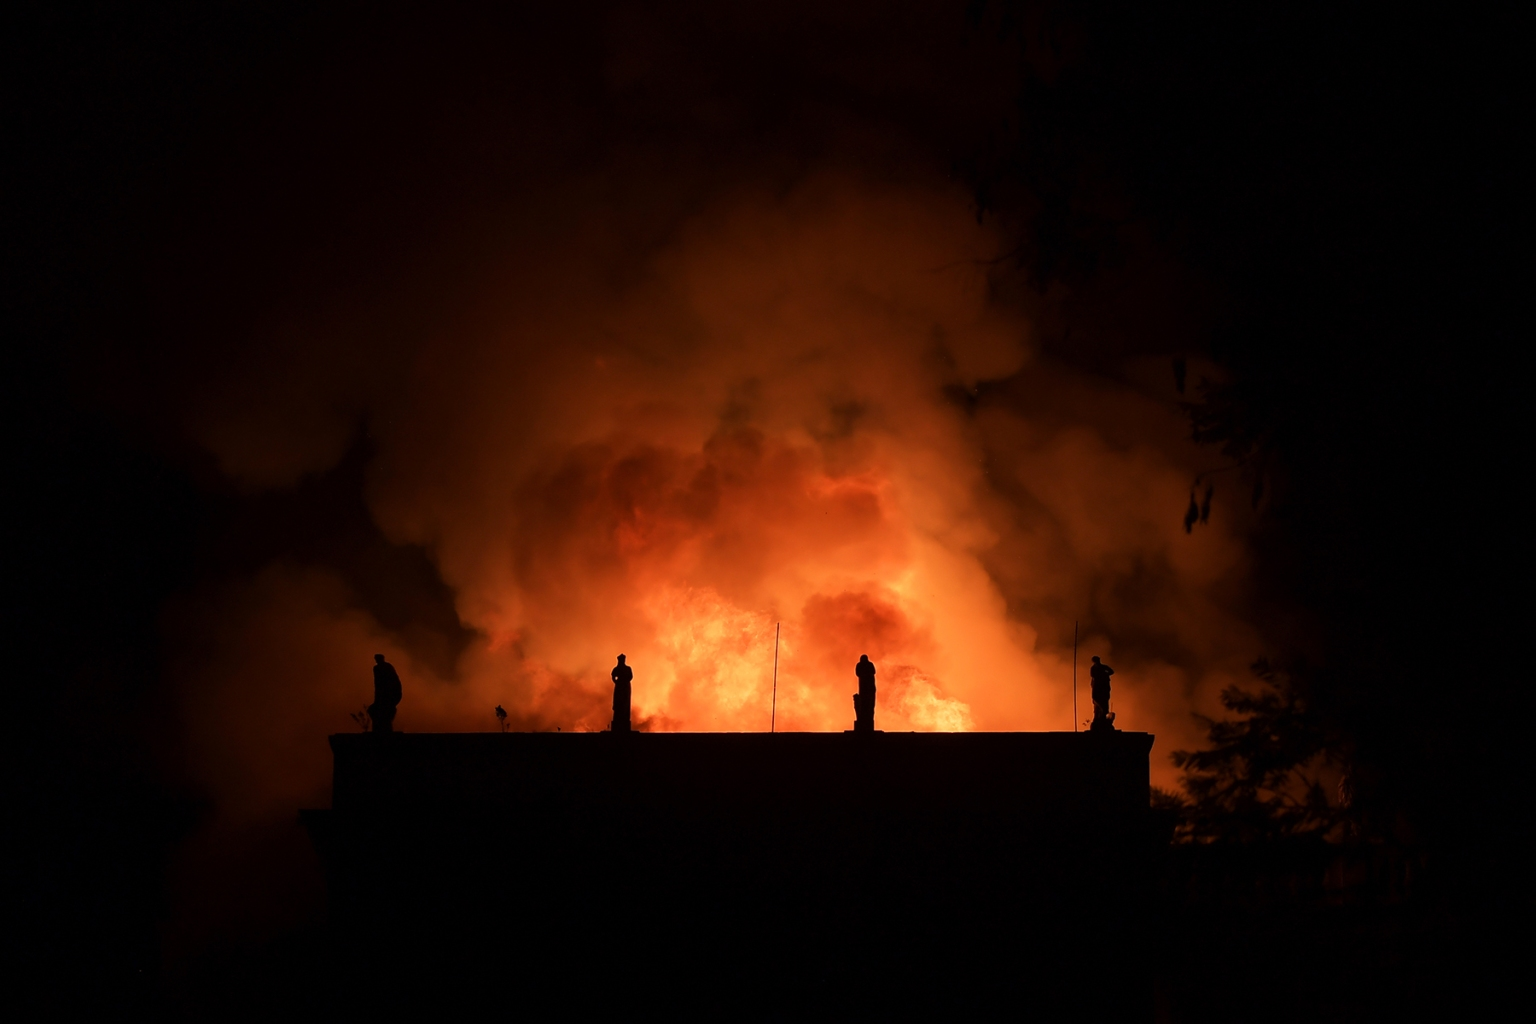 A massive fire engulfs the National Museum in Rio de Janeiro on Sept. 2. The magestic edifice was home to more than 20 million valuable pieces, including art and artifacts from Greco-Roman times and Egypt as well as from Brazil and the rest of Latin America. CARL DE SOUZA/AFP/Getty Images